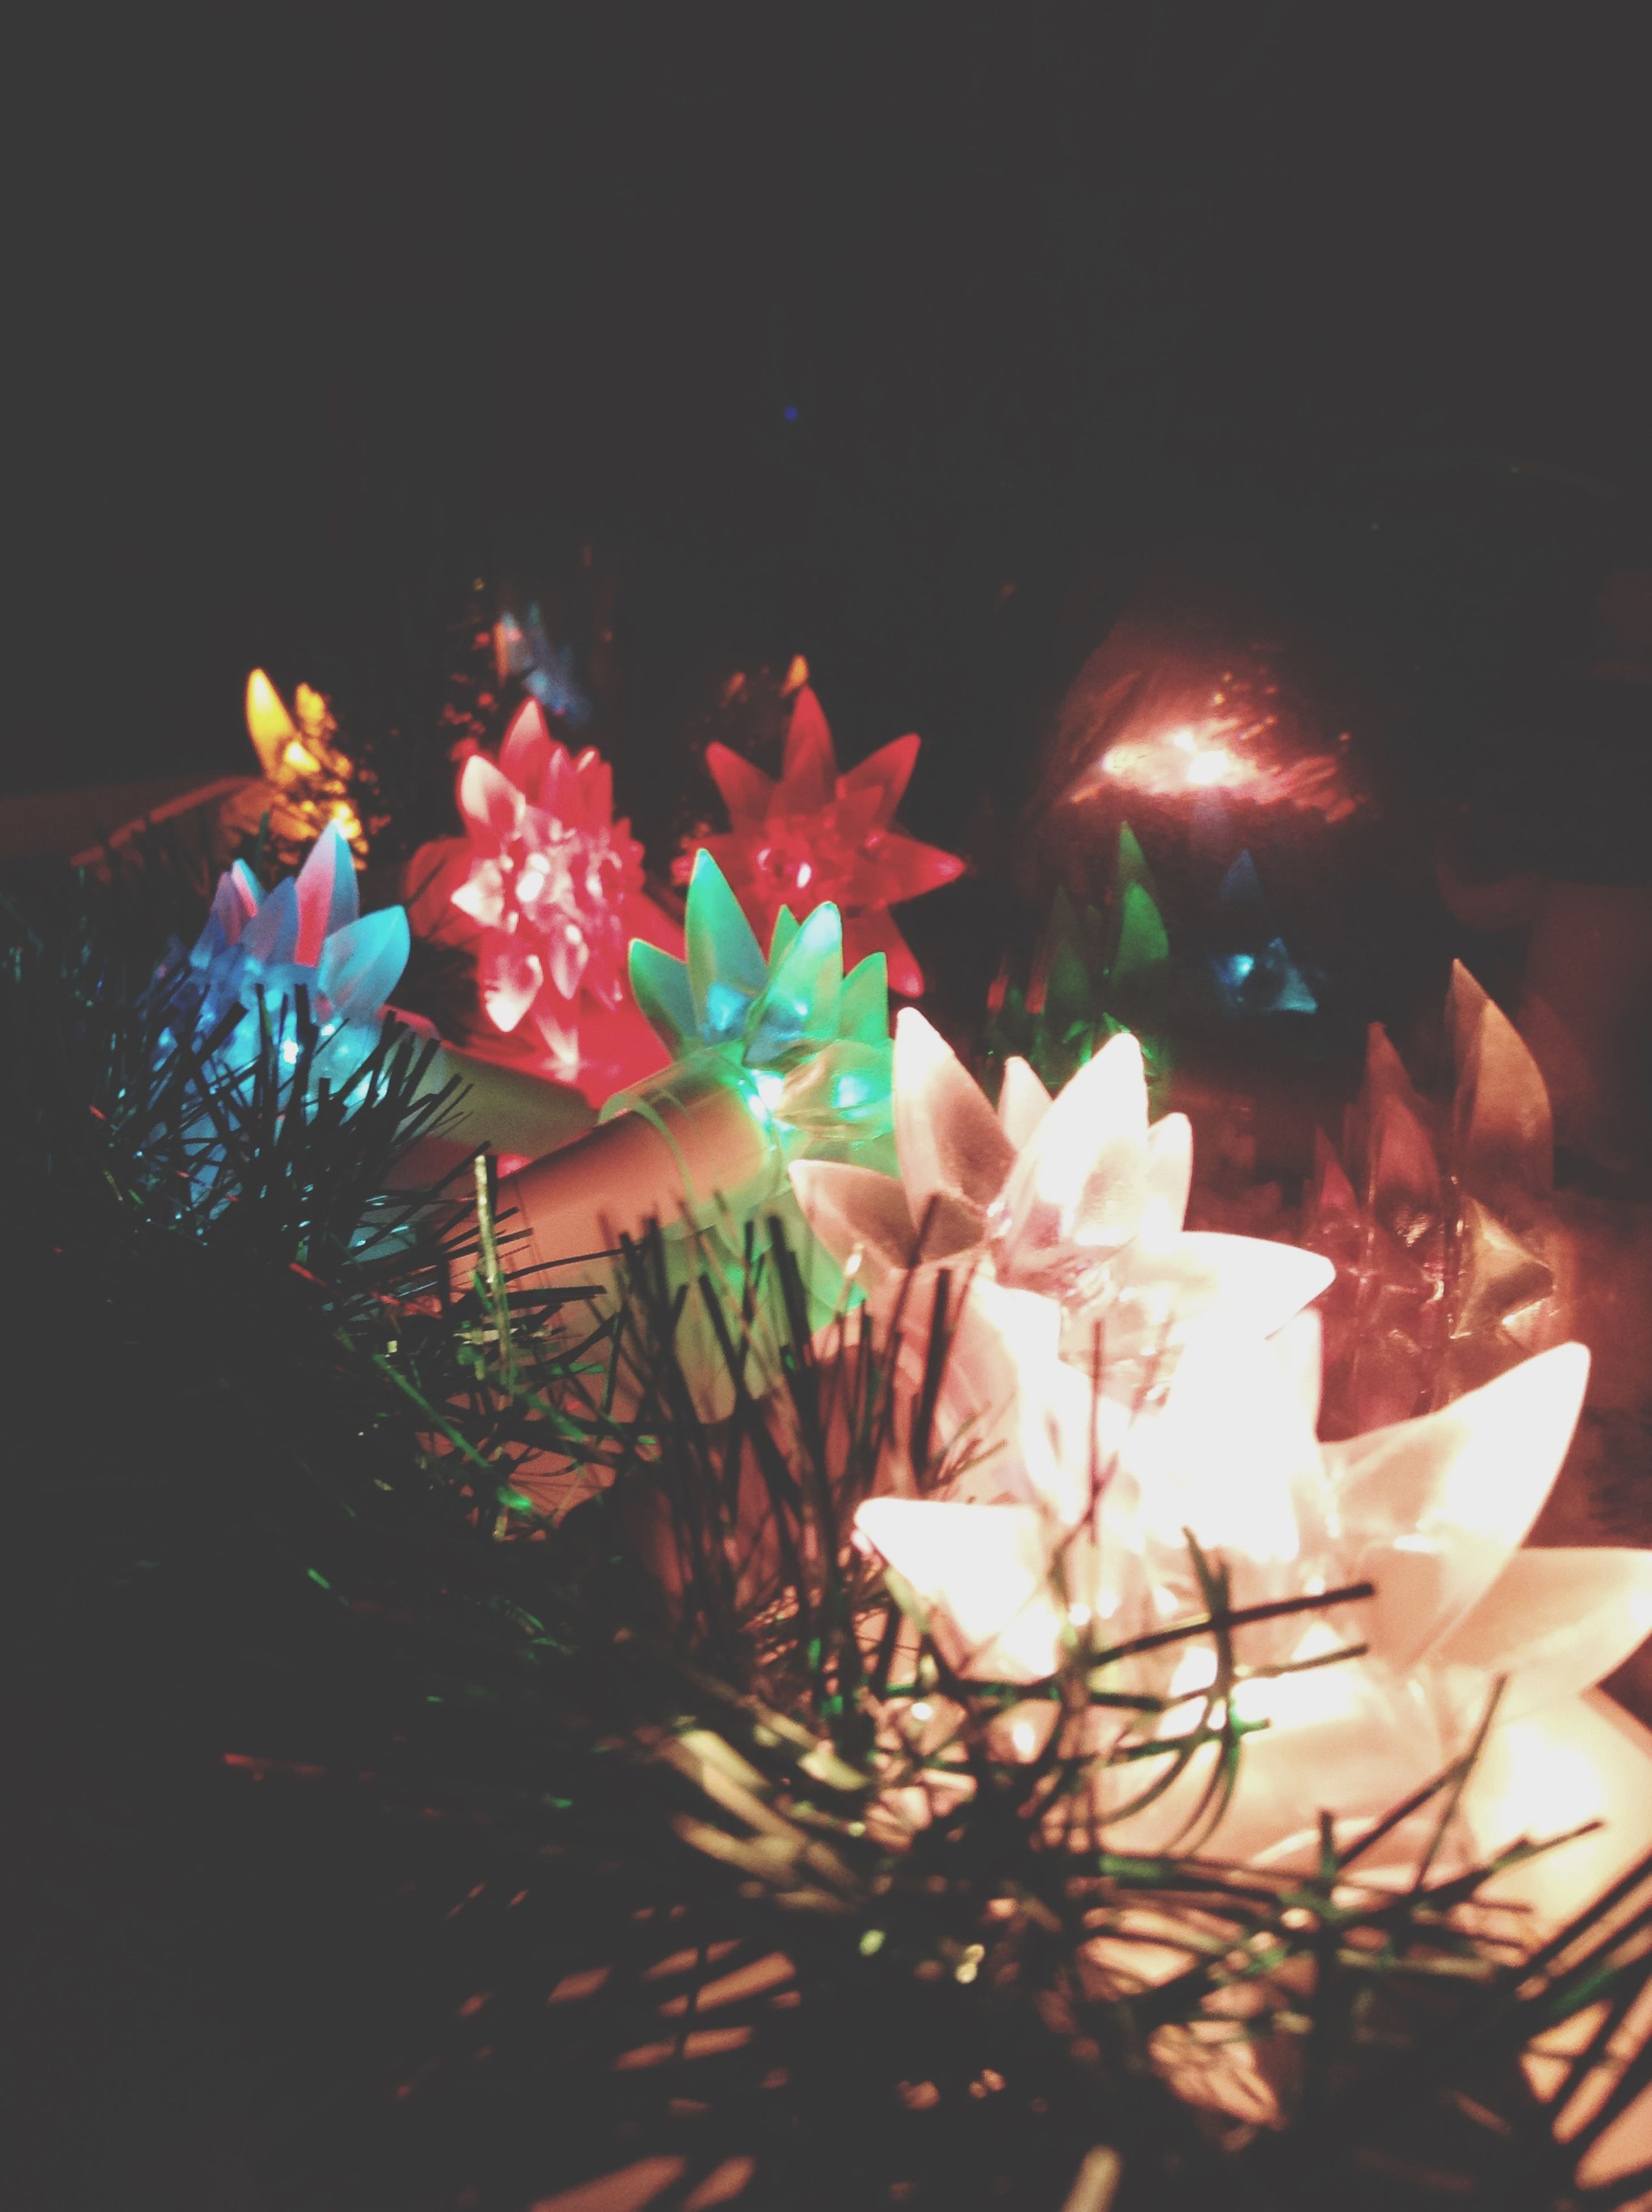 flower, night, illuminated, petal, freshness, plant, fragility, sunlight, decoration, celebration, table, pink color, front or back yard, lens flare, flower head, outdoors, growth, potted plant, no people